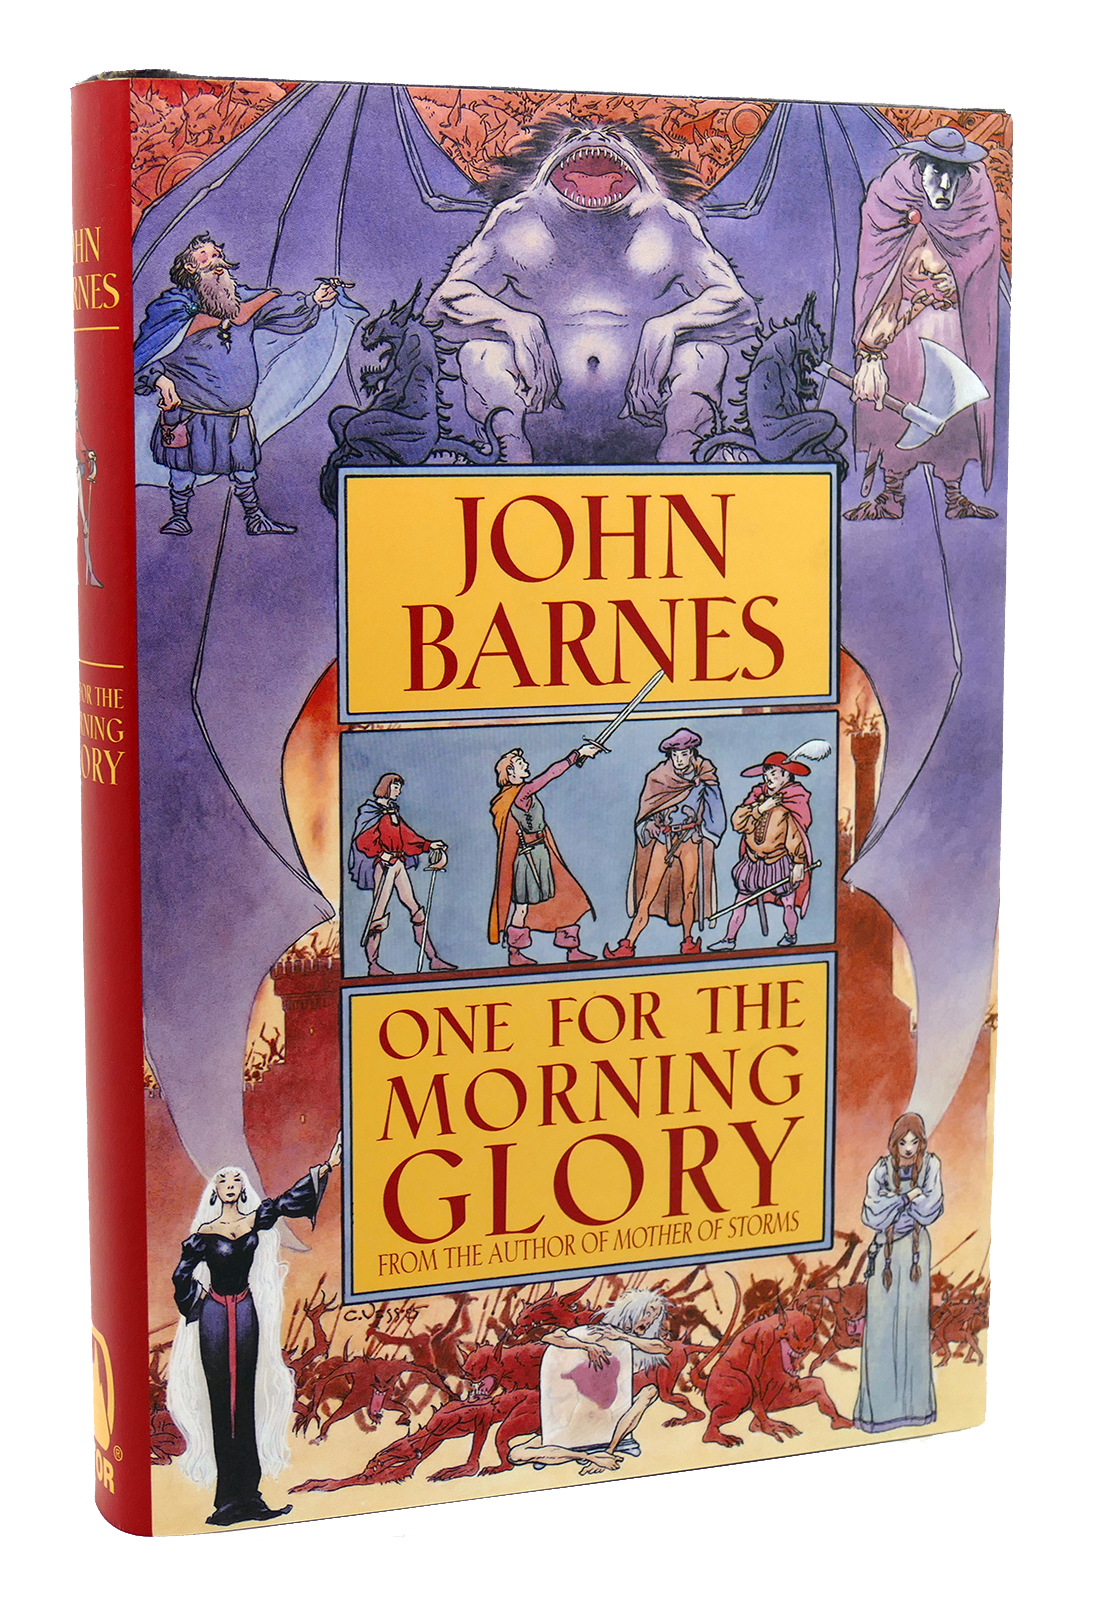 Read One For The Morning Glory By John Barnes